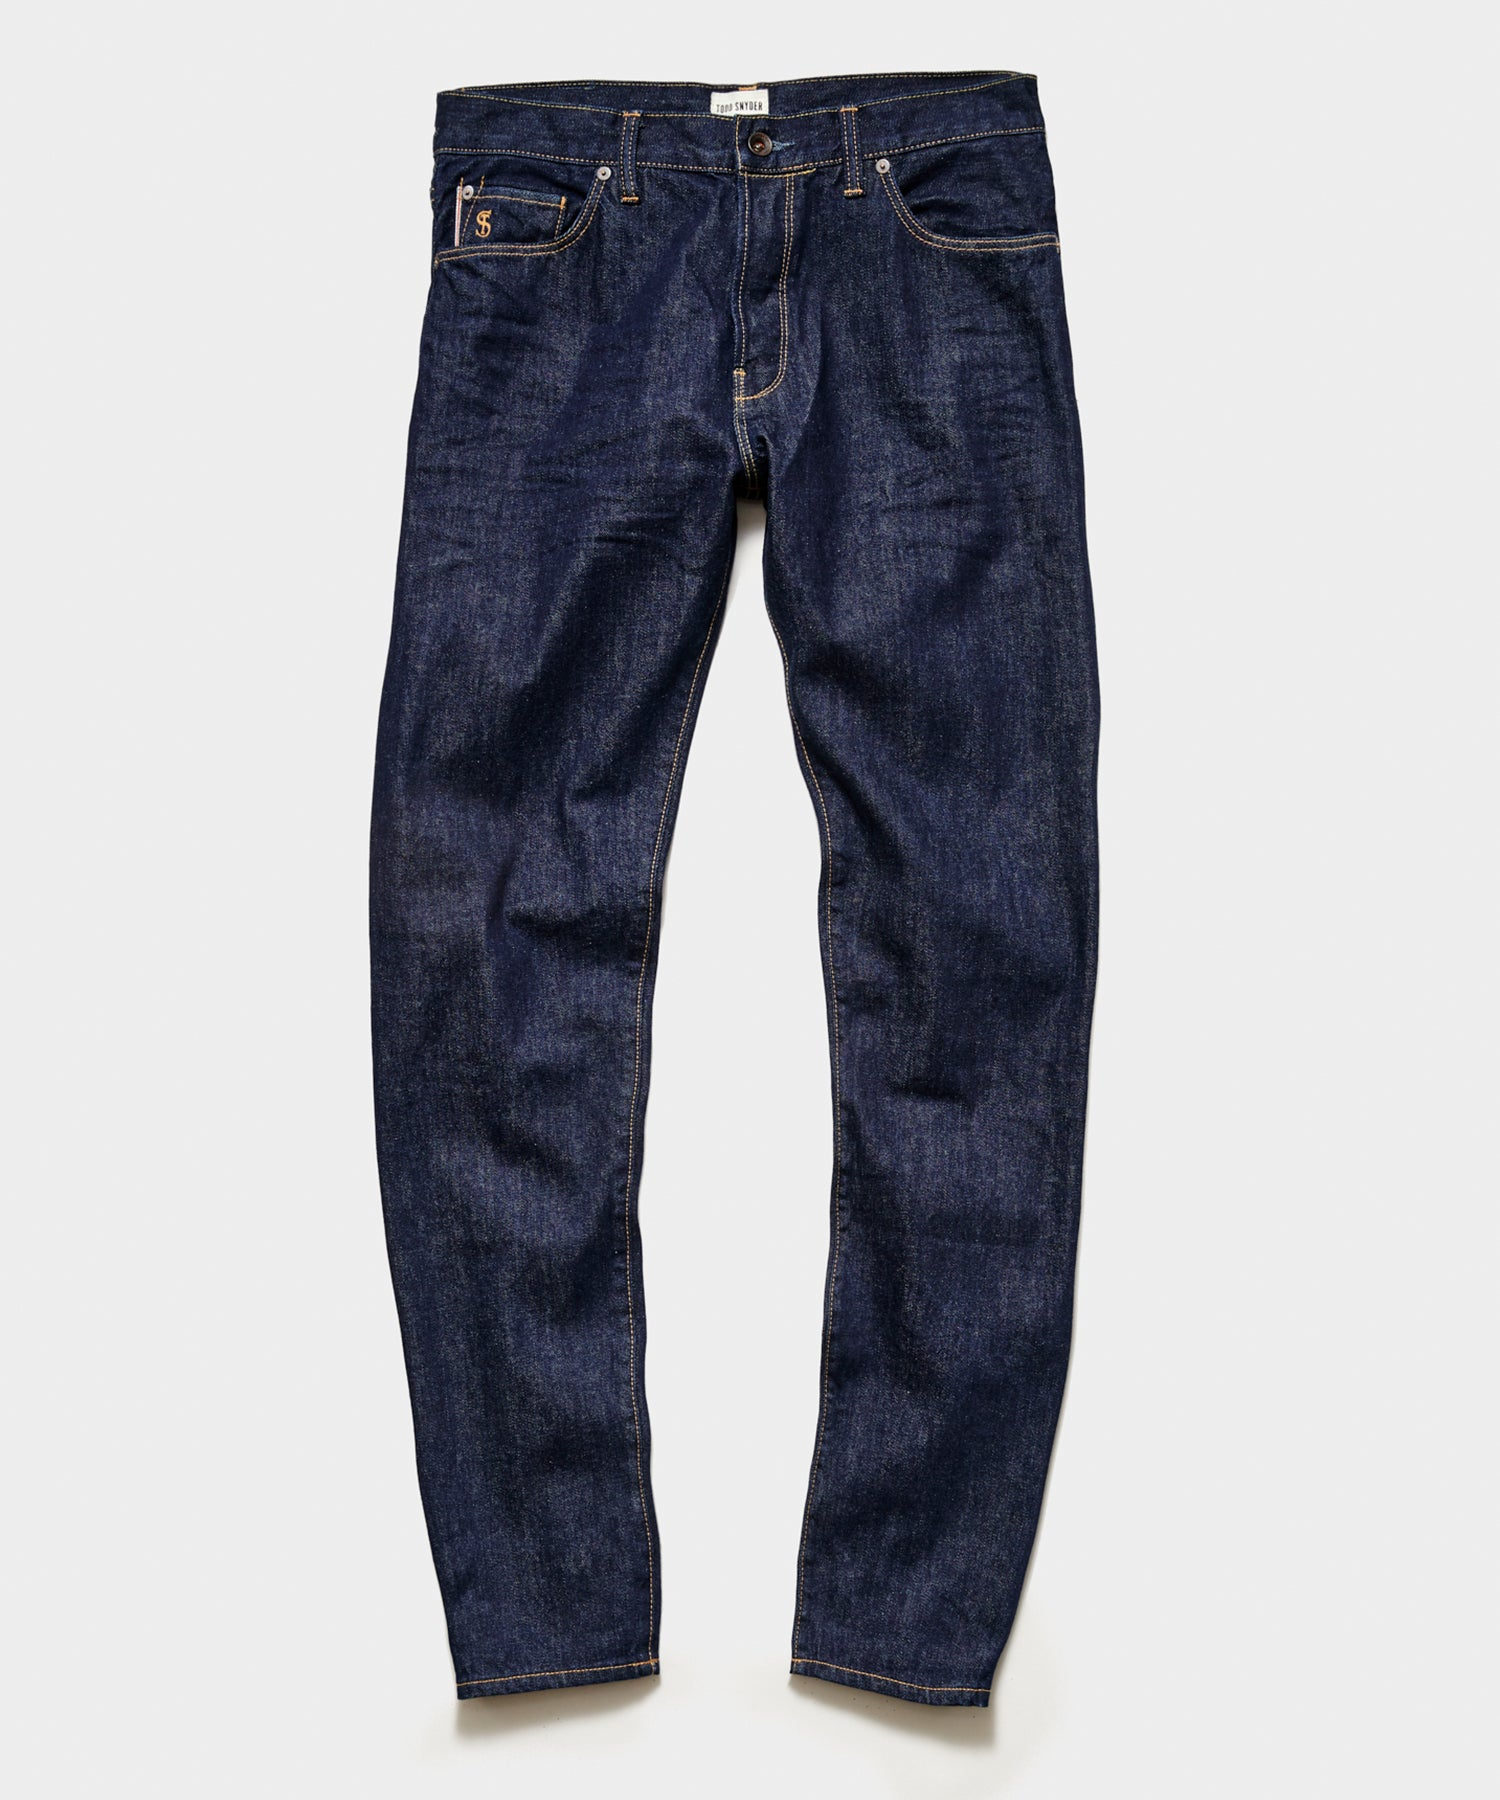 Straight Fit Selvedge Jean in Indigo Rinse